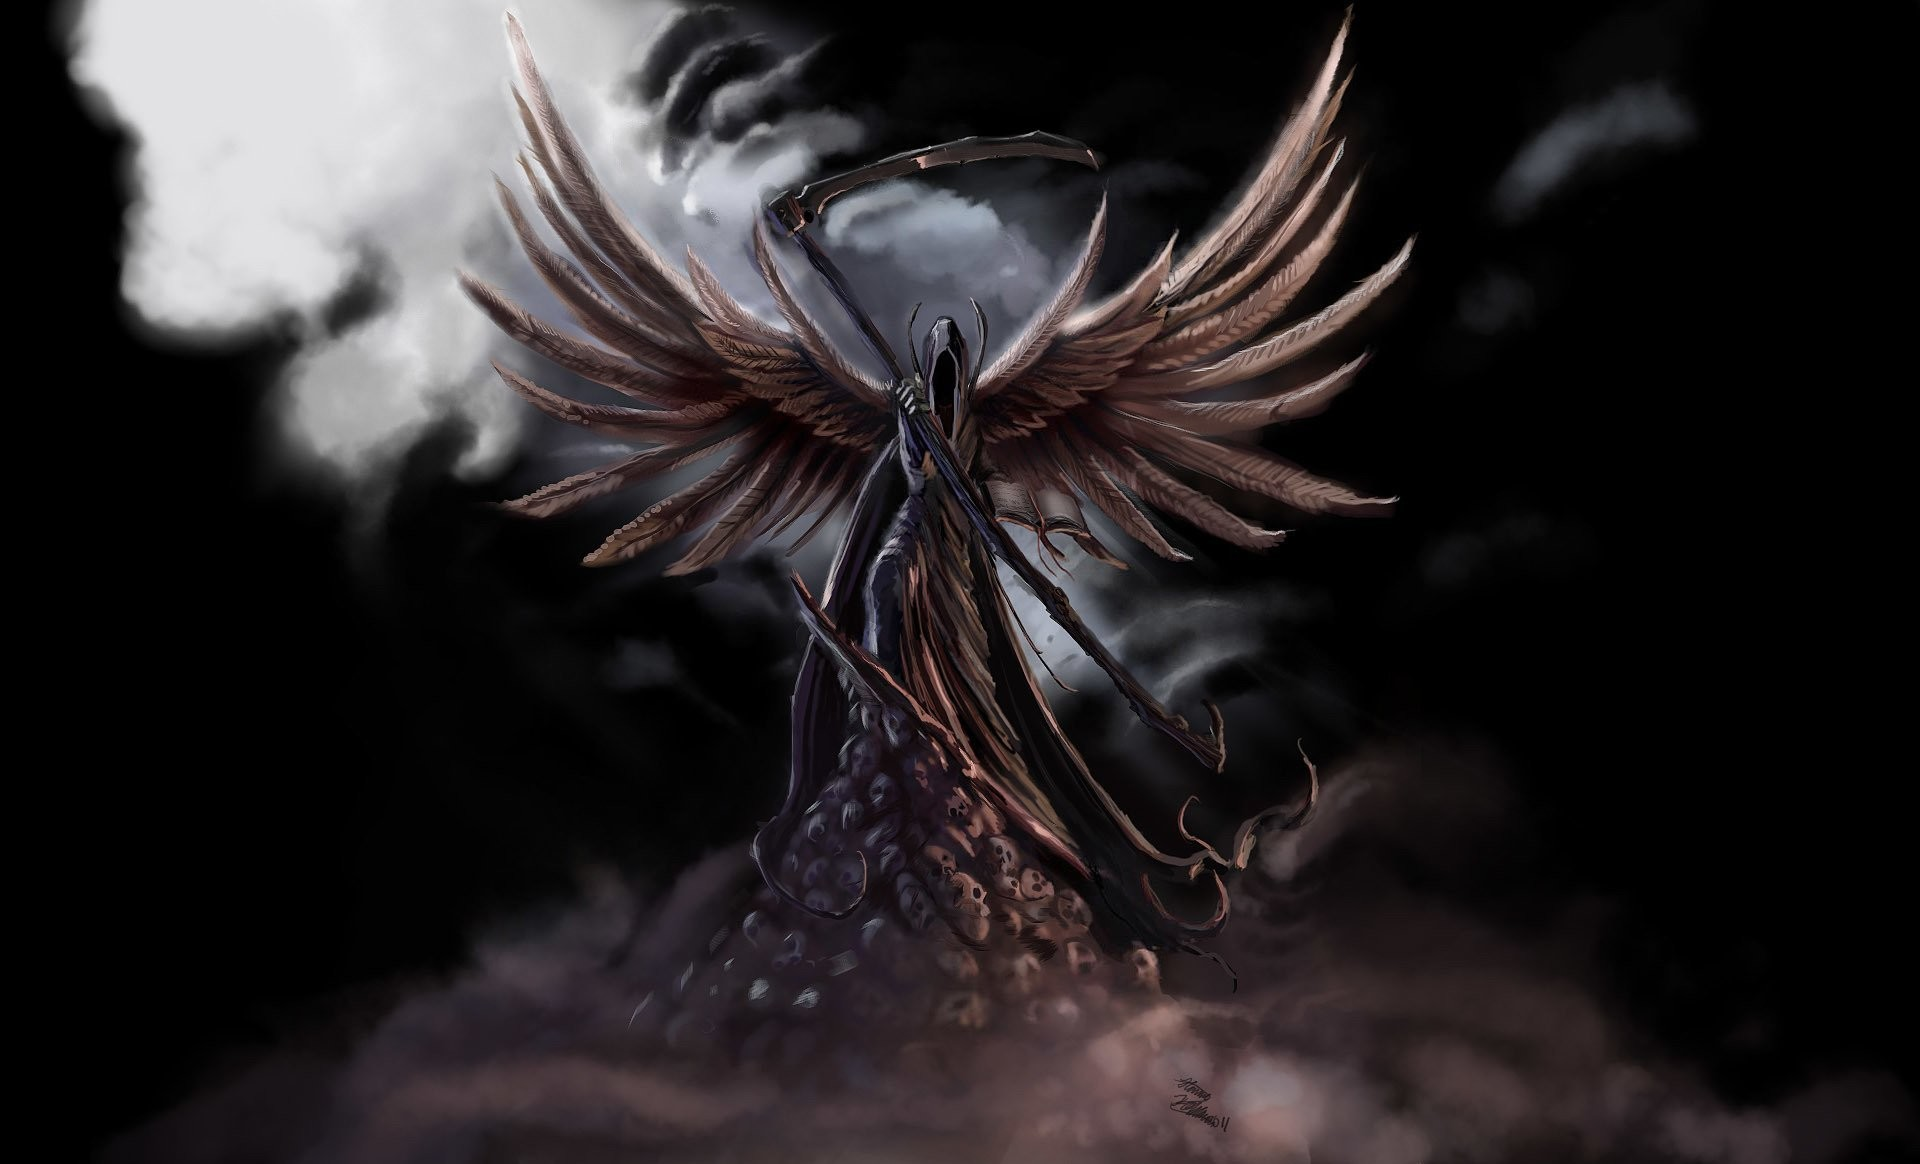 1920x1164 fiction dark angel wings death spit skull fog black background